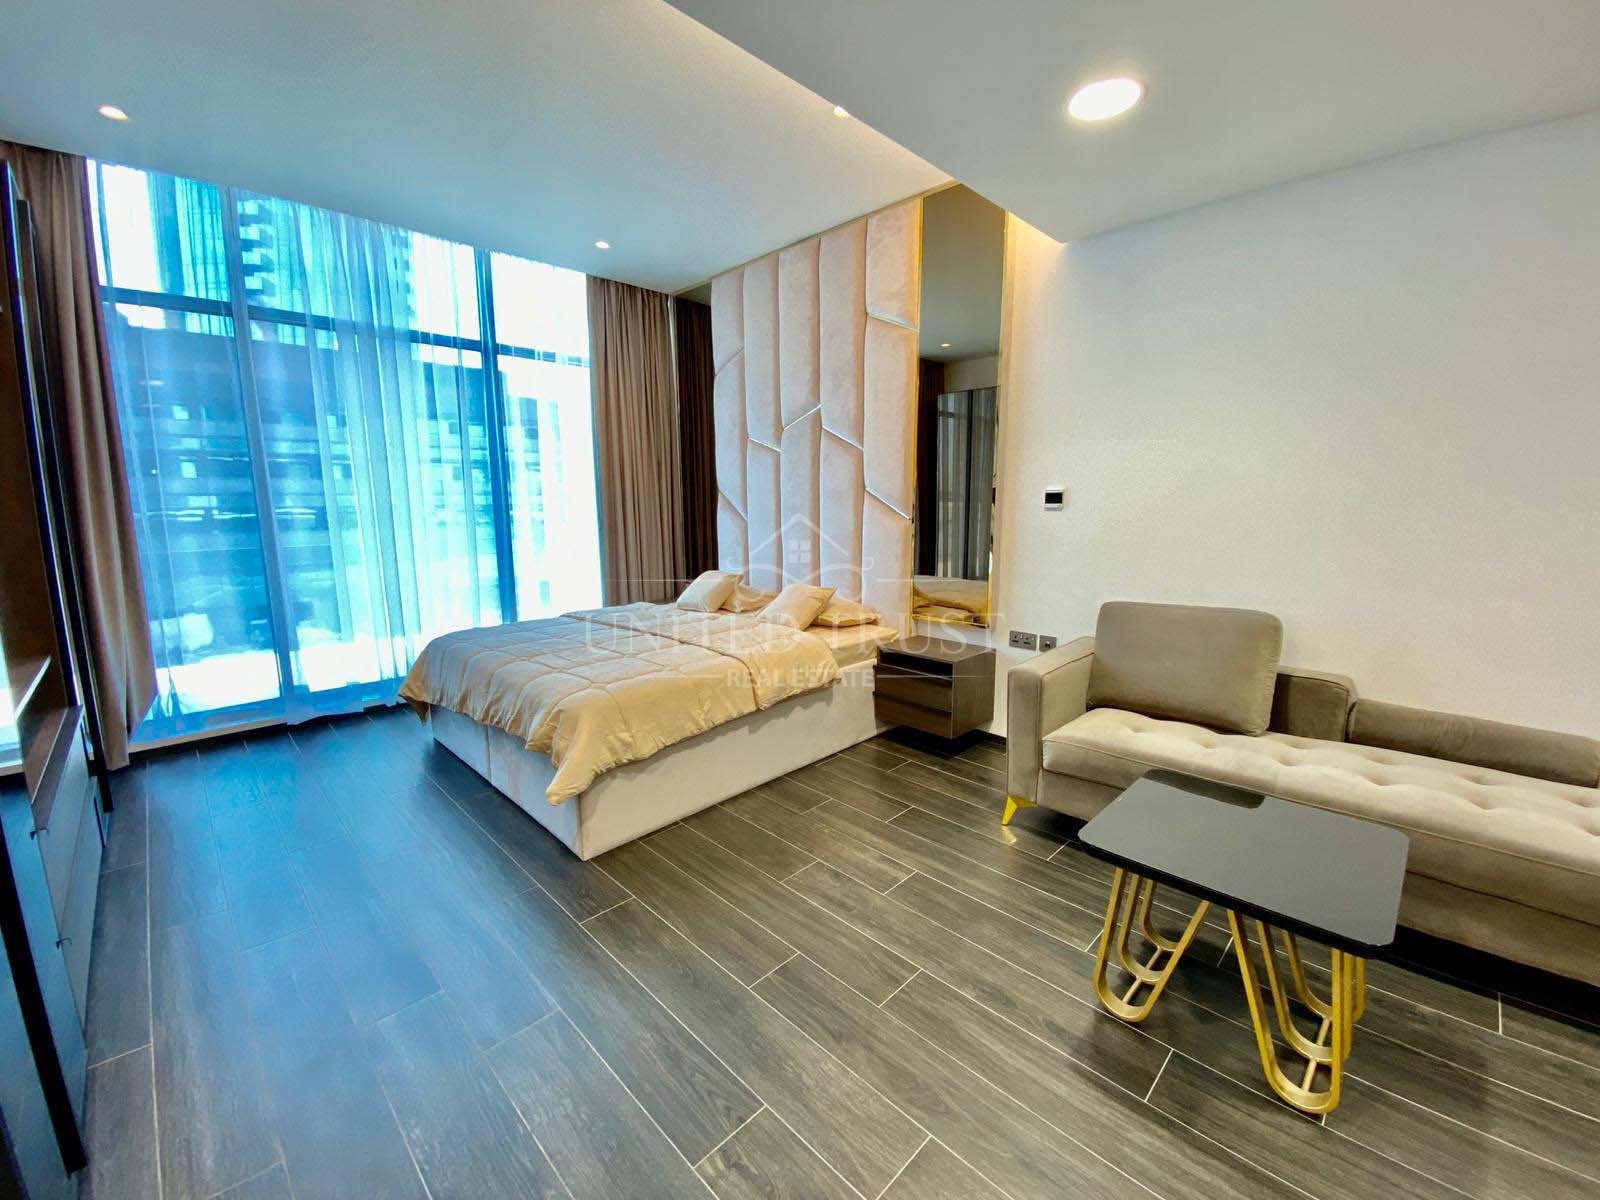 For Rent Luxury Apartment in Financial Harbour. Ref: MAN-MN-001